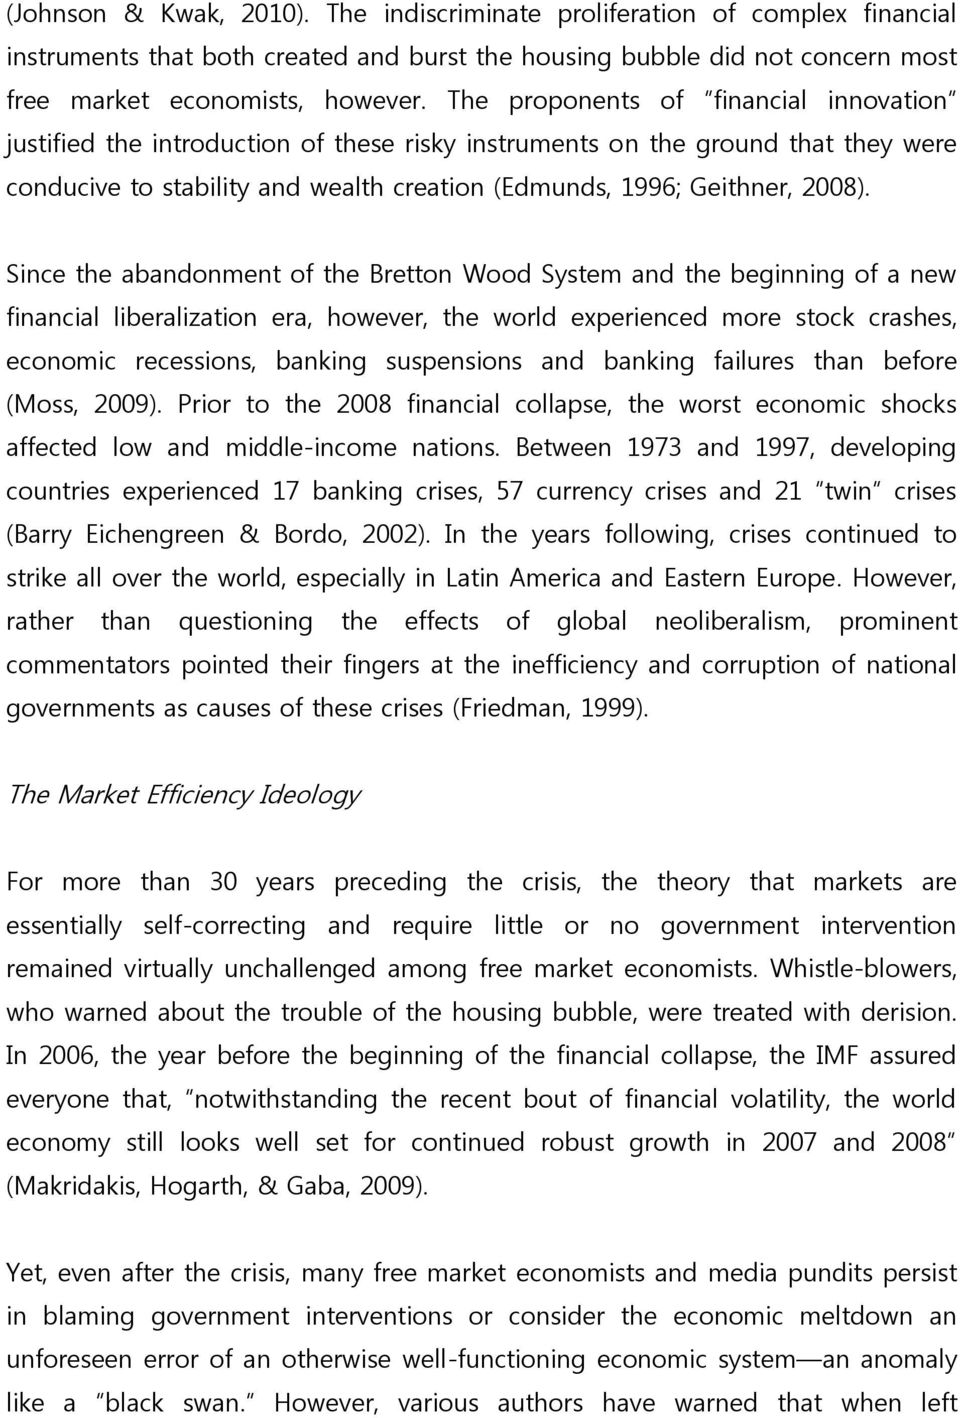 Since the abandonment of the Bretton Wood System and the beginning of a new financial liberalization era, however, the world experienced more stock crashes, economic recessions, banking suspensions